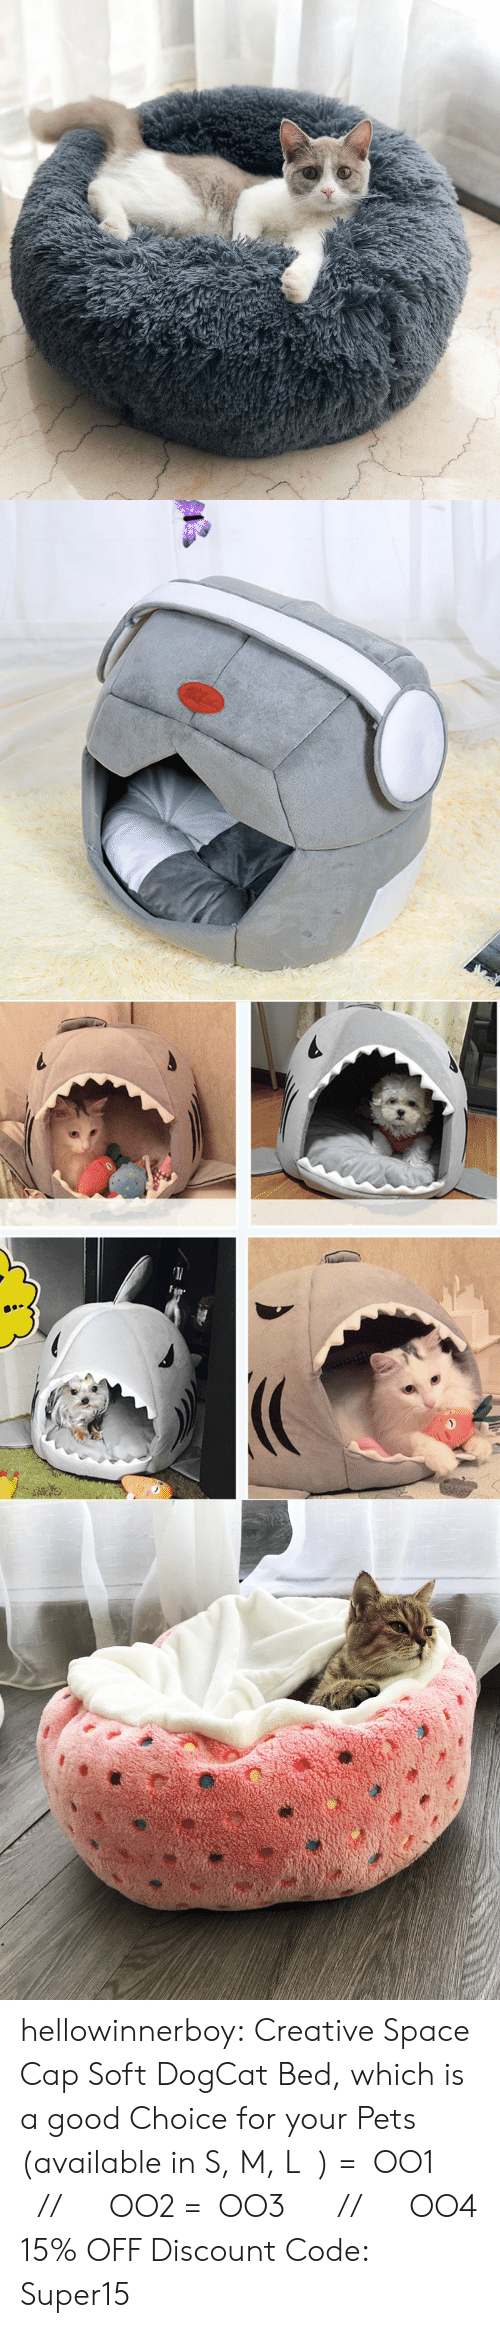 Tumblr, Blog, and Pets: hellowinnerboy: Creative Space Cap Soft DogCat Bed, which is a good Choice for your Pets (available in S, M, L  ) =  OO1       //      OO2  =  OO3      //      OO4  15% OFF Discount Code: Super15